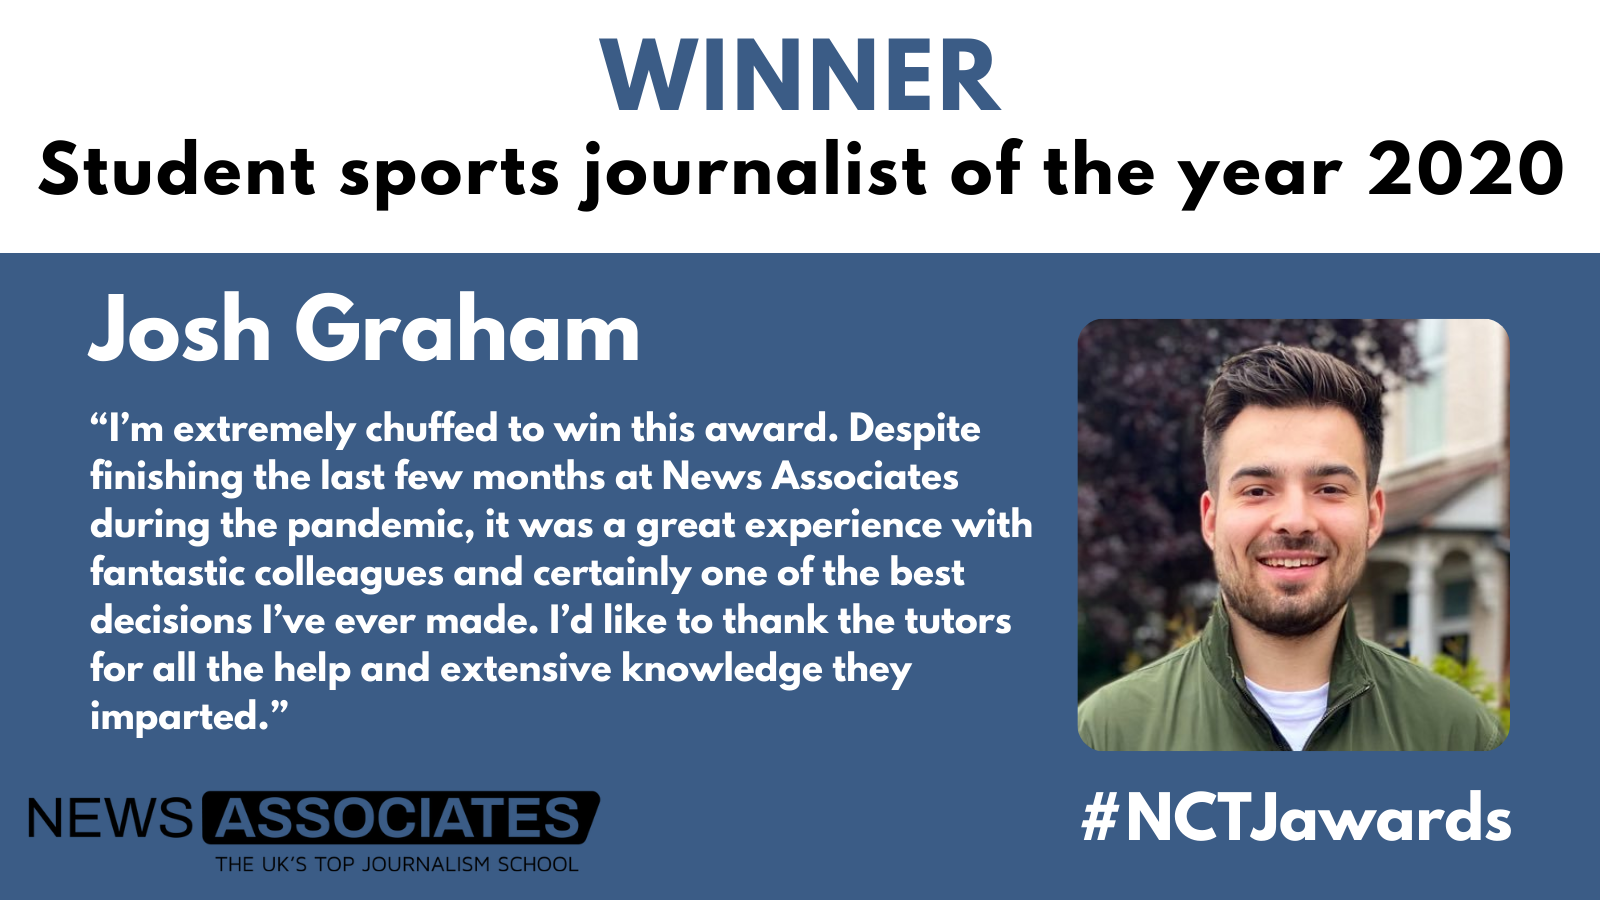 """Graphic of Josh Graham winning student sports journalist of the year at the NCTJ awards for excellence: """"I'm extremely chuffed to win this award. Despite finishing the last few months at News Associates during the pandemic, it was a great experience with fantastic colleagues and certainly one of the best decisions I've ever made. I'd like to thank the tutors for all the help and extensive knowledge they imparted."""""""